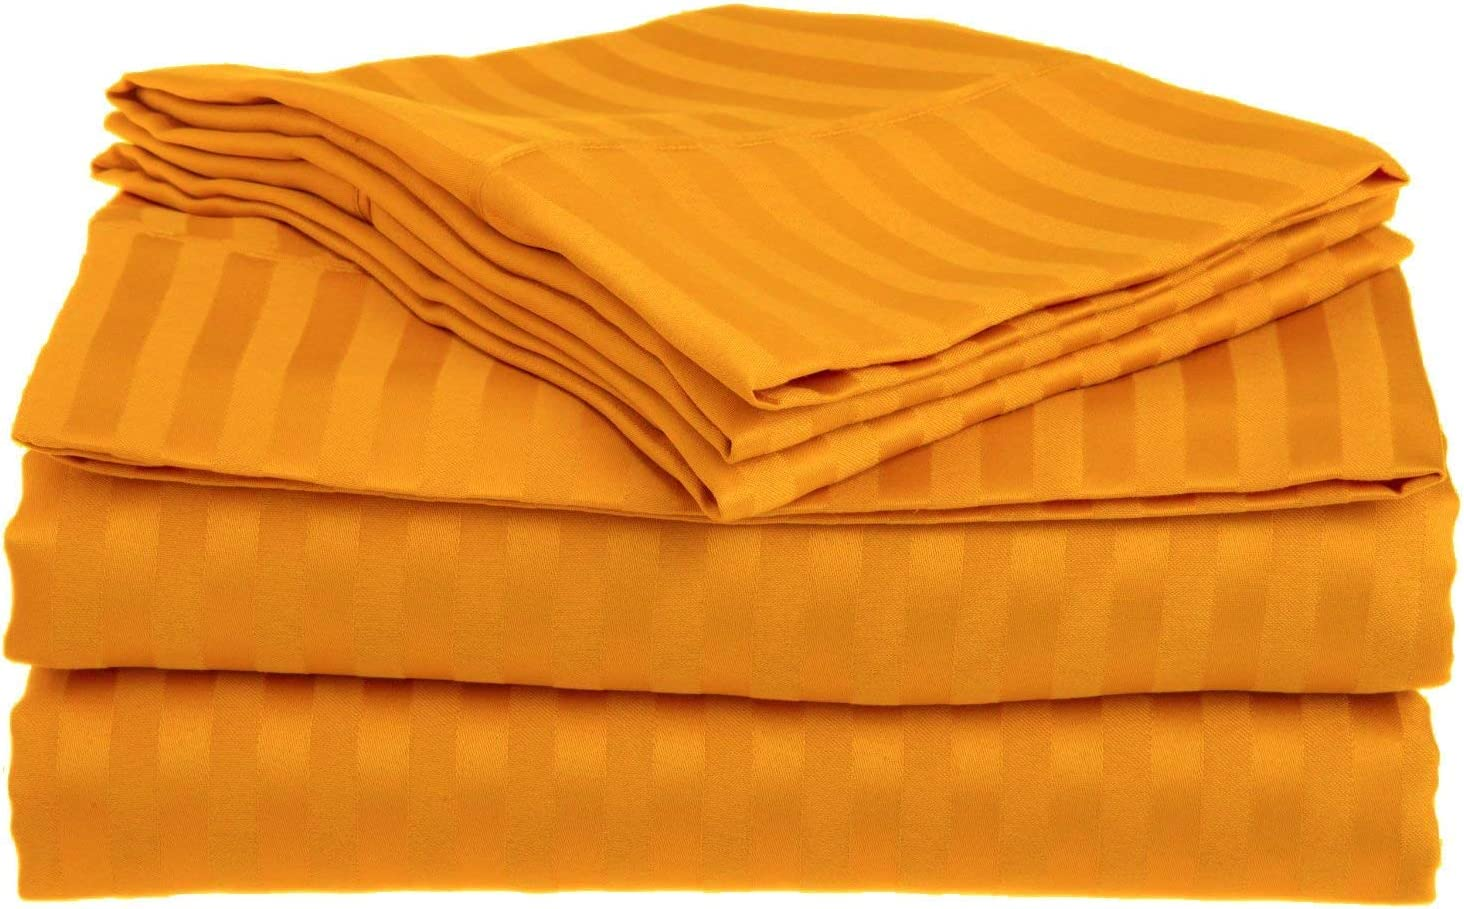 Hotel Luxury Certified 100% Cotton { New arrival Set Sheet Max 53% OFF 6-PCs } 1800-TC